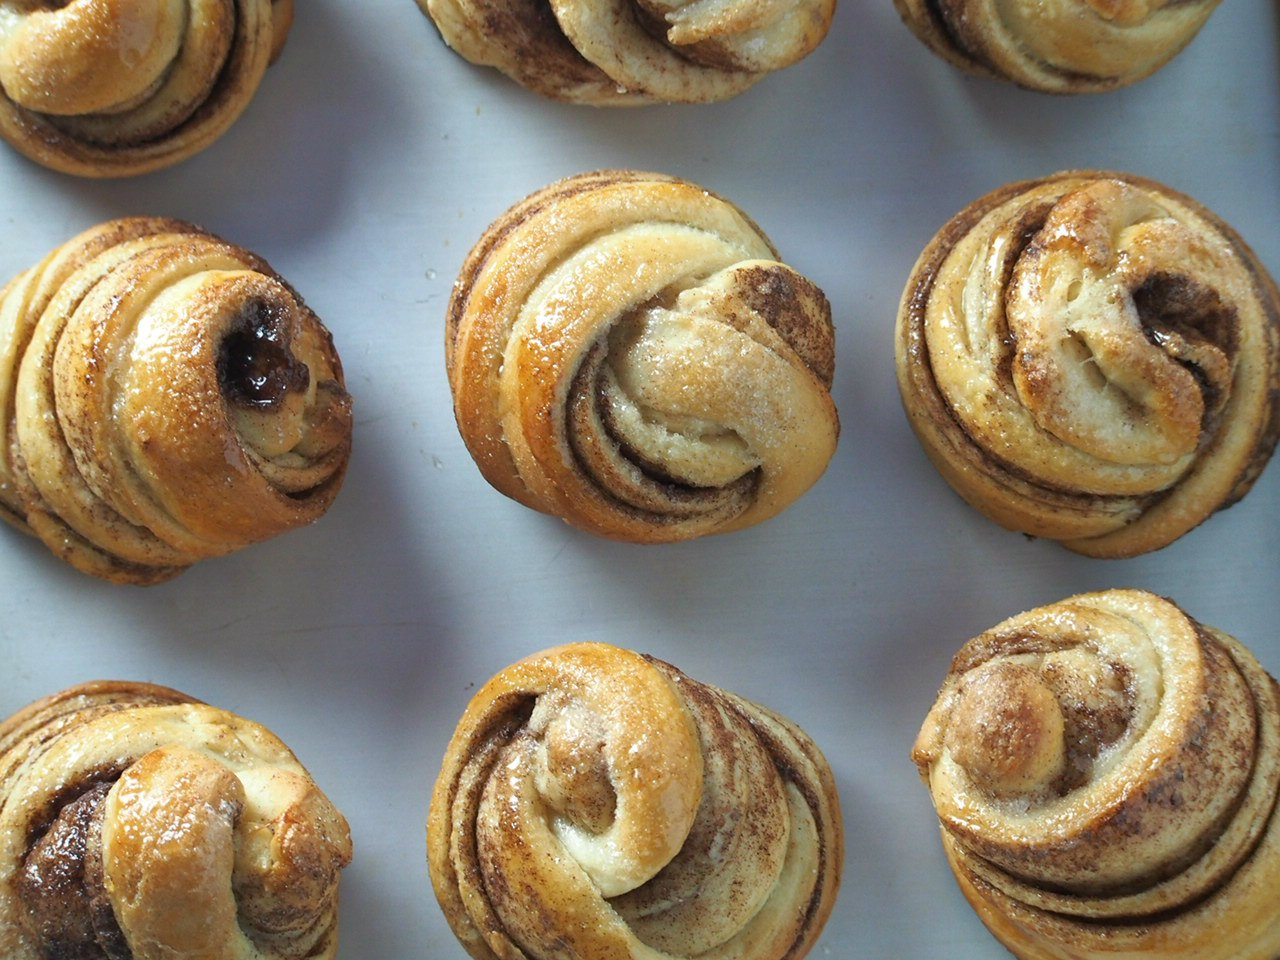 Swedish Cardamom Buns give you sweet and tasty rolls with warm and bright flavors of cinnamon and cardamom spices combined.